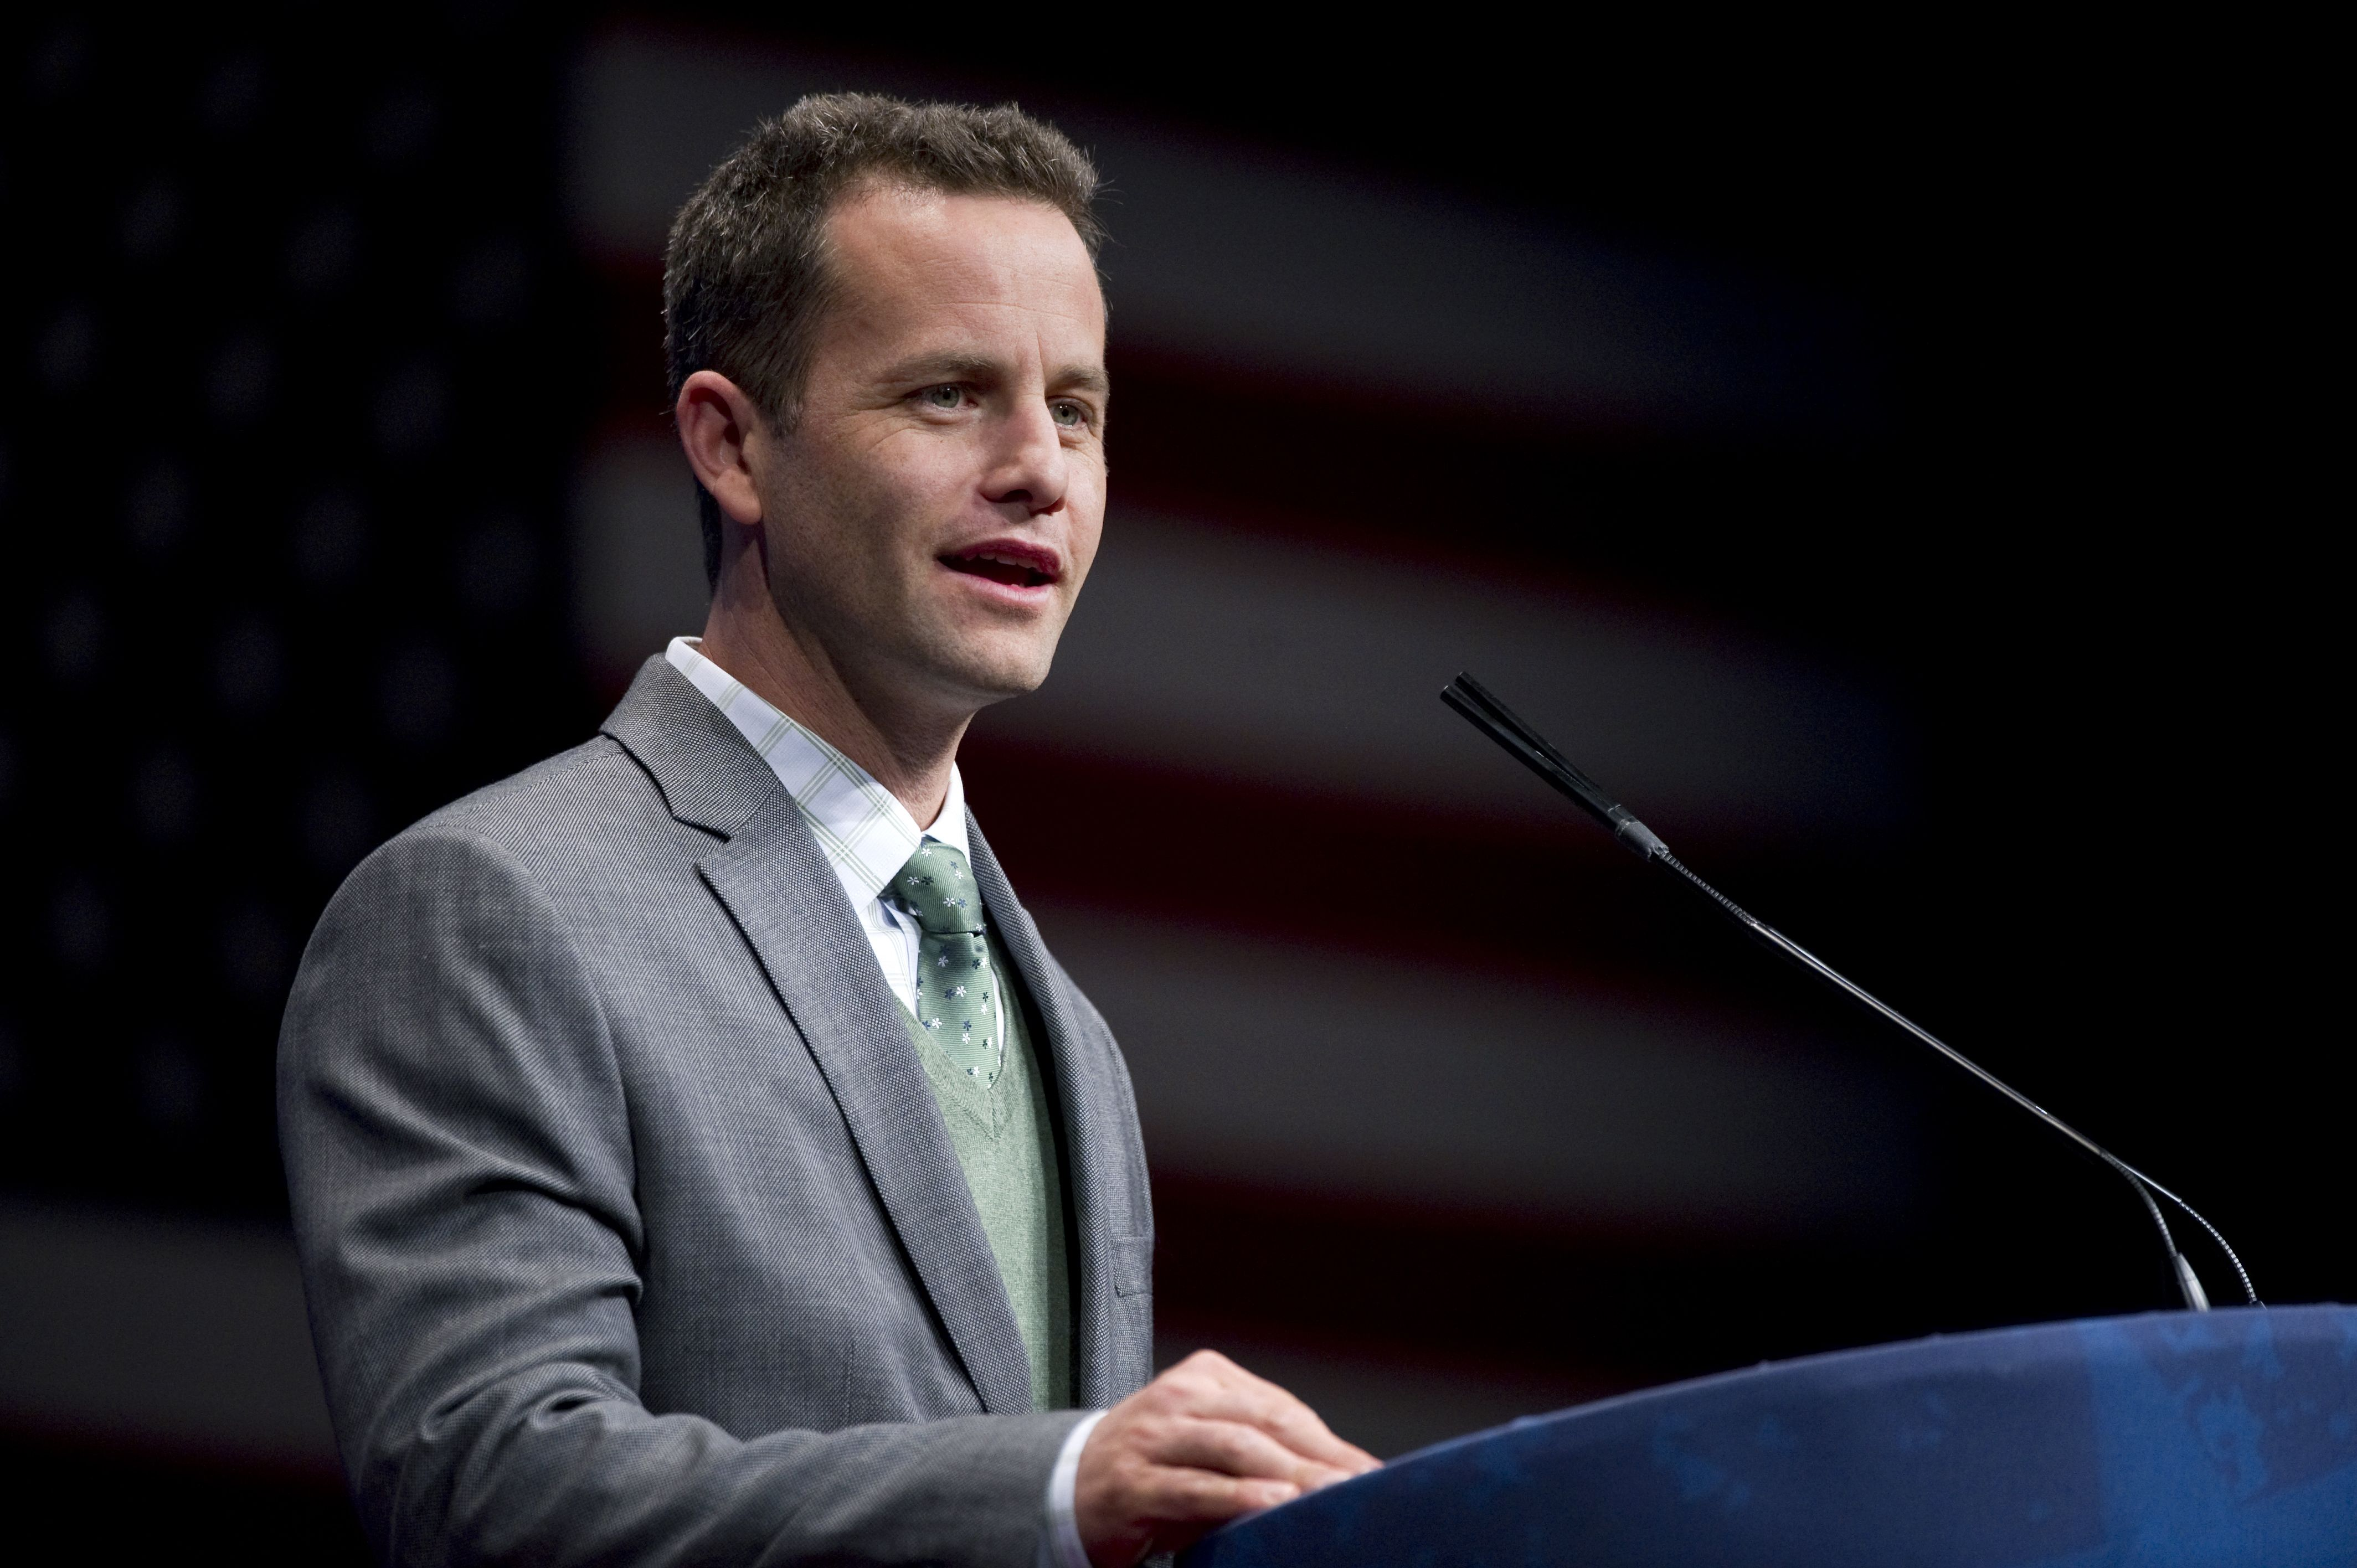 Cool Guy Kirk Cameron Believes Wives Should Be Subservient to Their ...